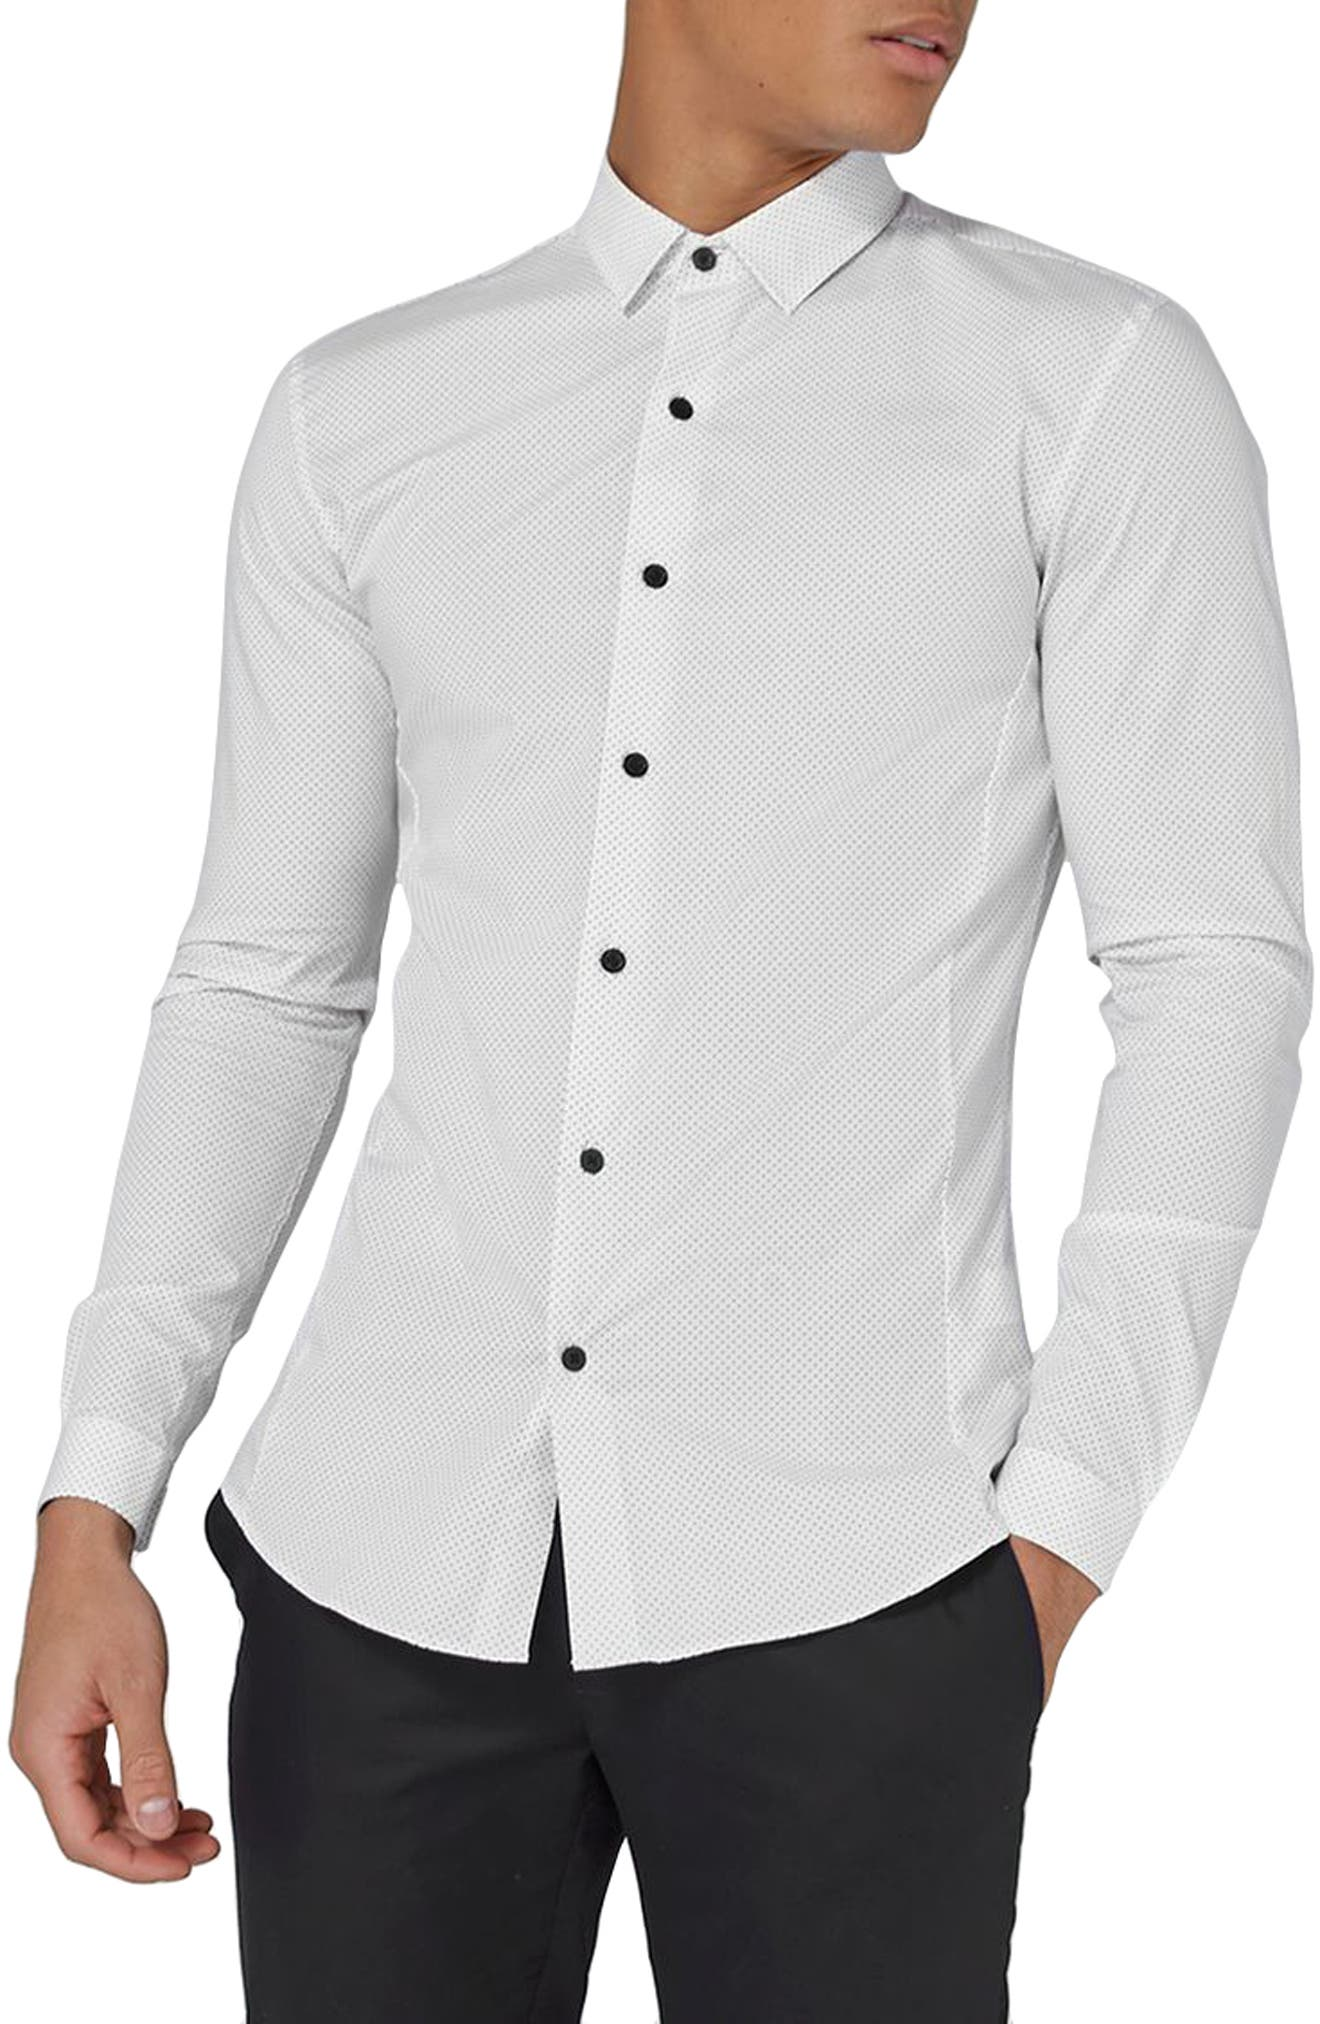 Muscle Fit Polka Dot Sport Shirt,                         Main,                         color, White Multi